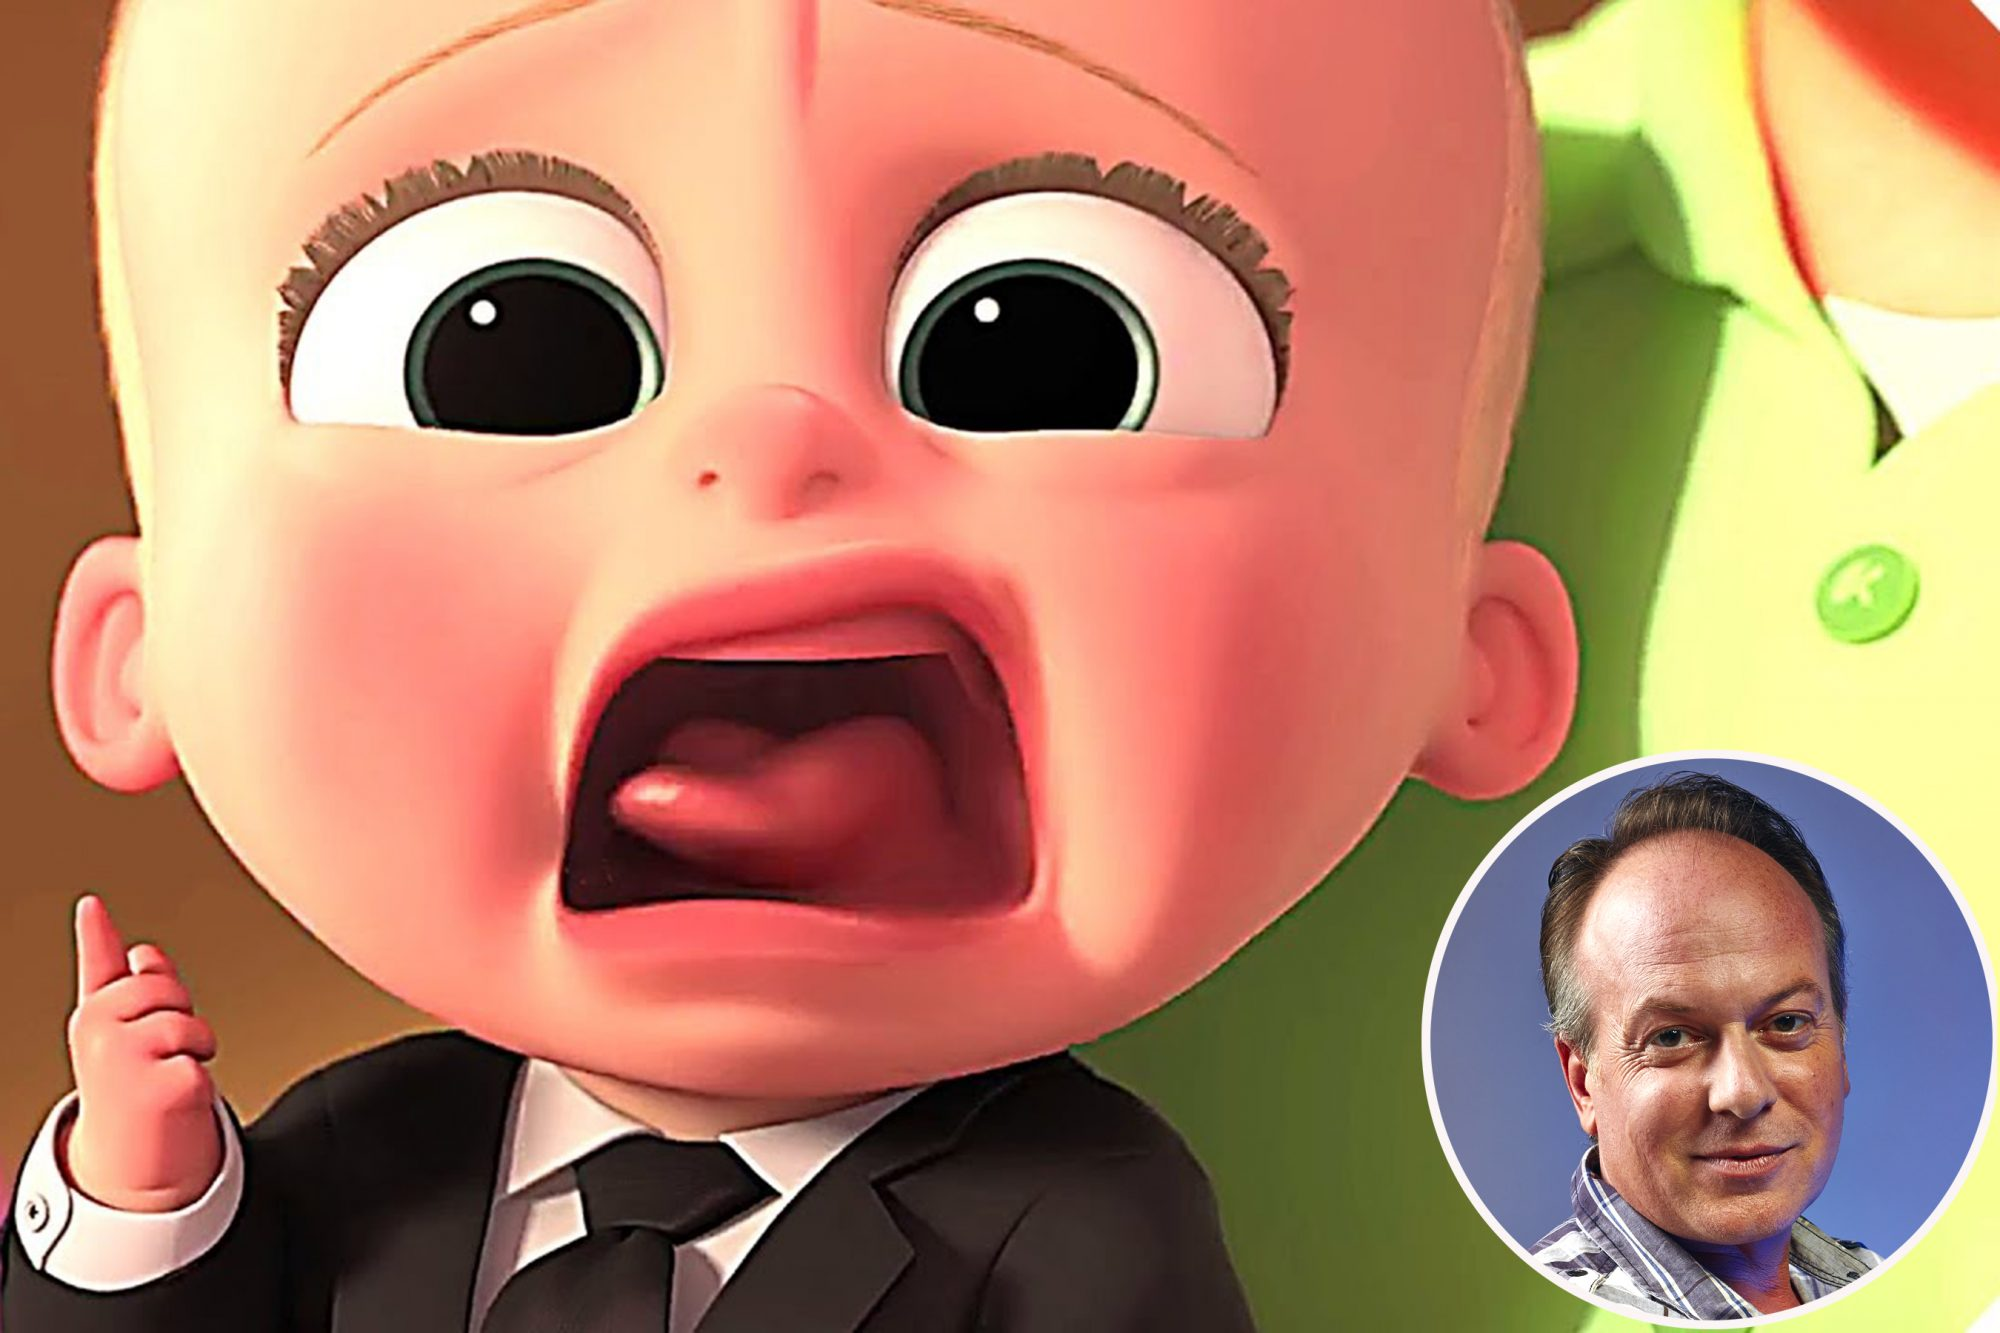 THE-BOSS-BABY-Animation-2017